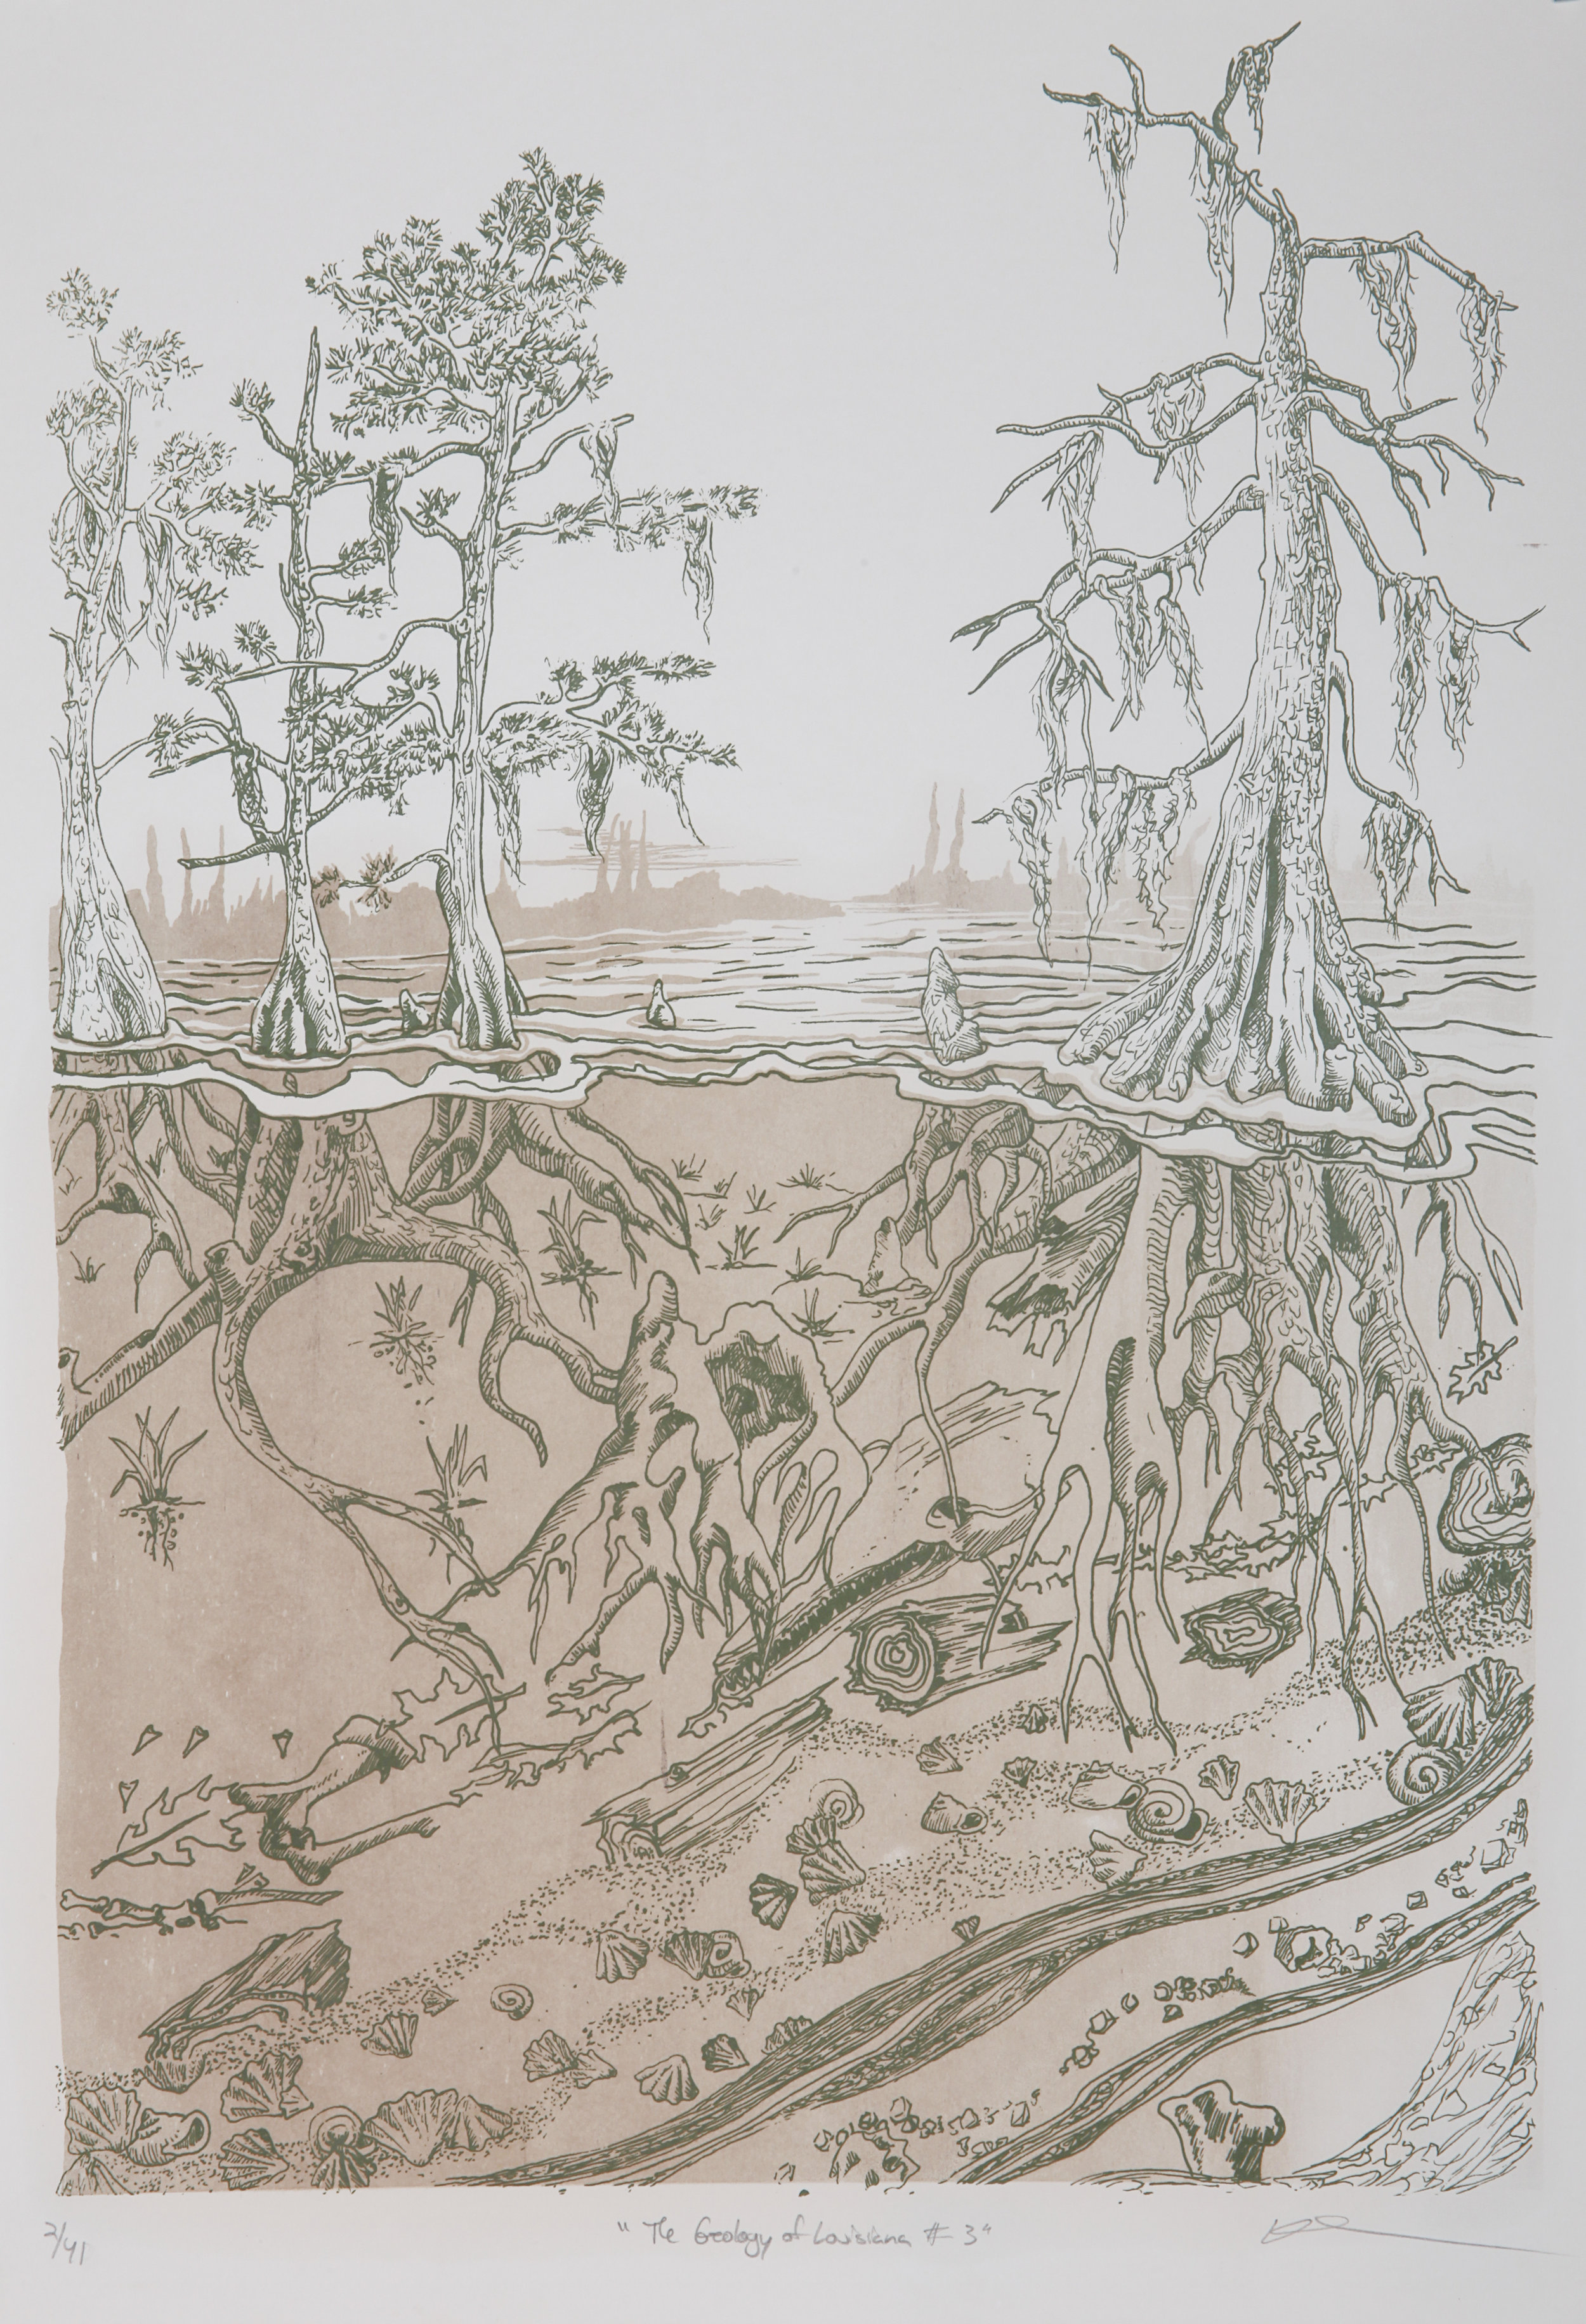 Pippin Fribie-Calder  The Geology of Louisiana #3.jpg